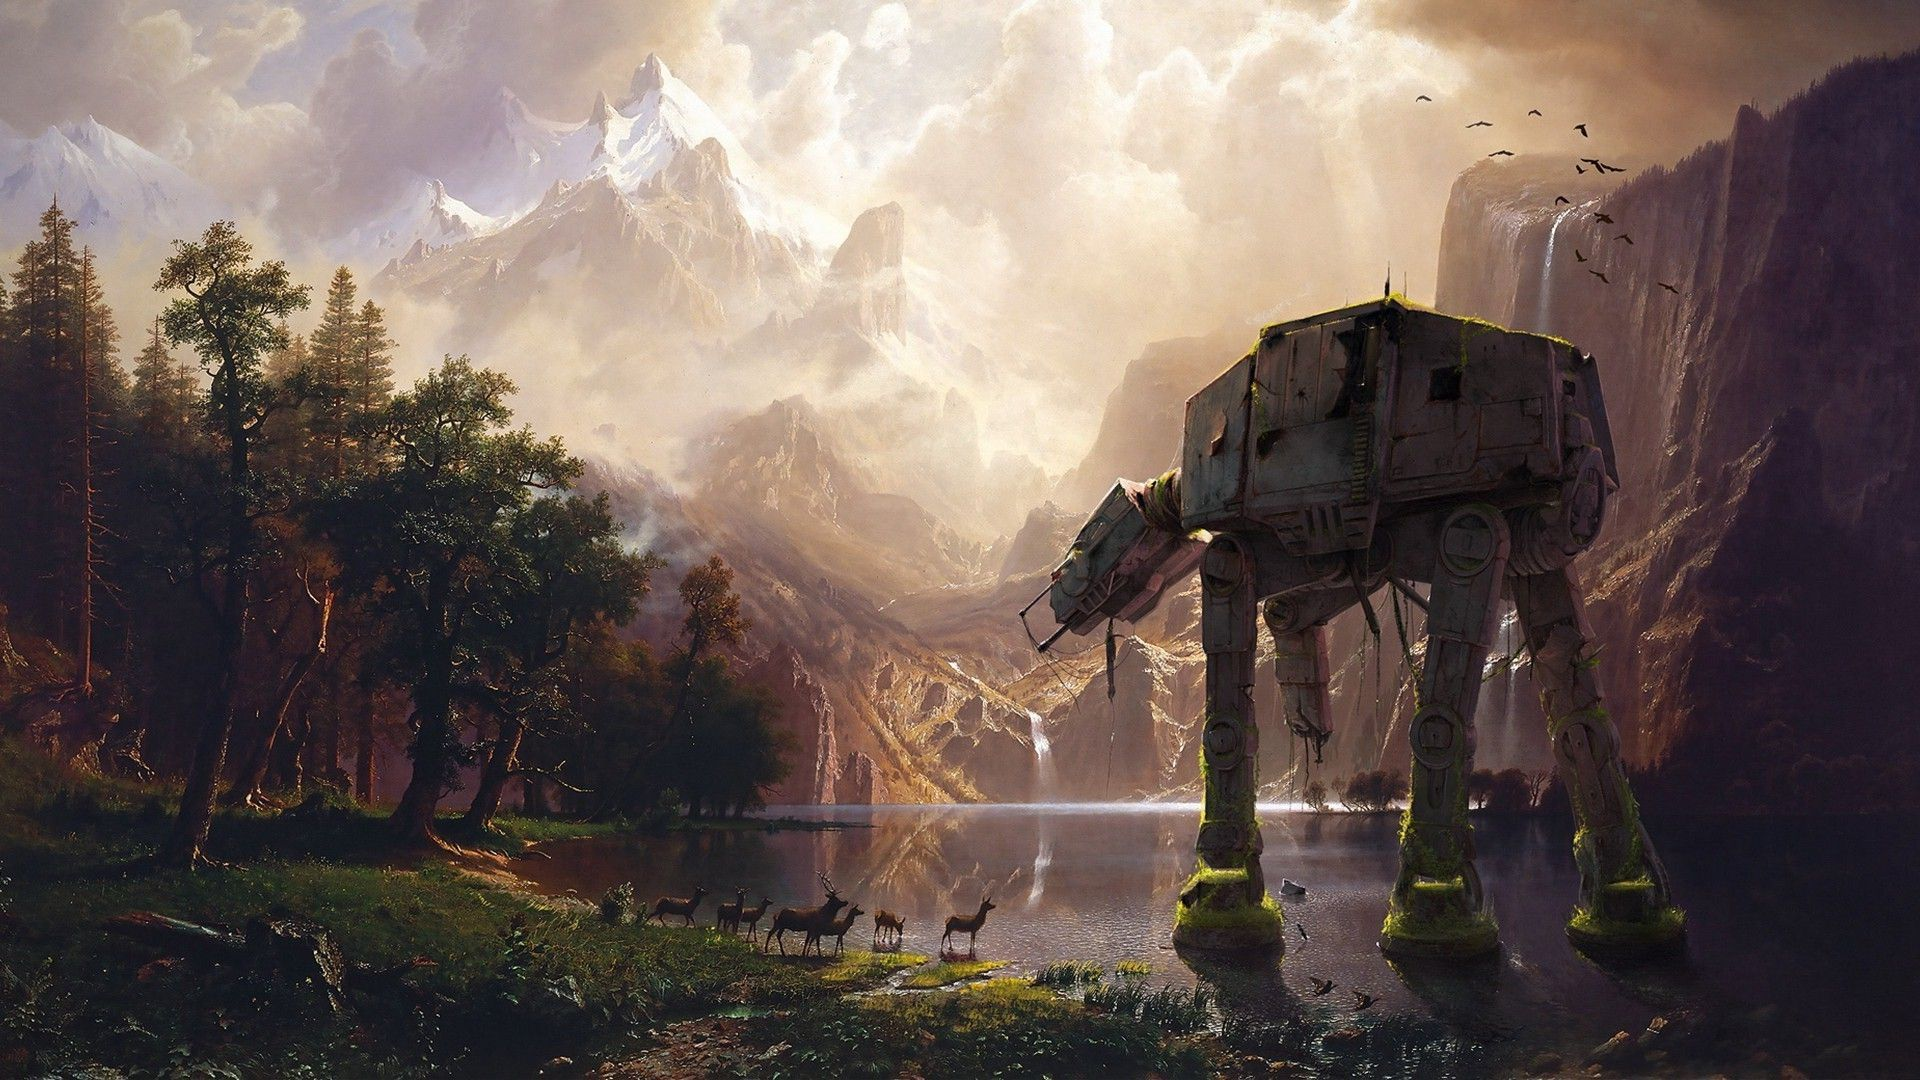 Star Wars Landscape Wallpapers Top Free Star Wars Landscape Backgrounds Wallpaperaccess